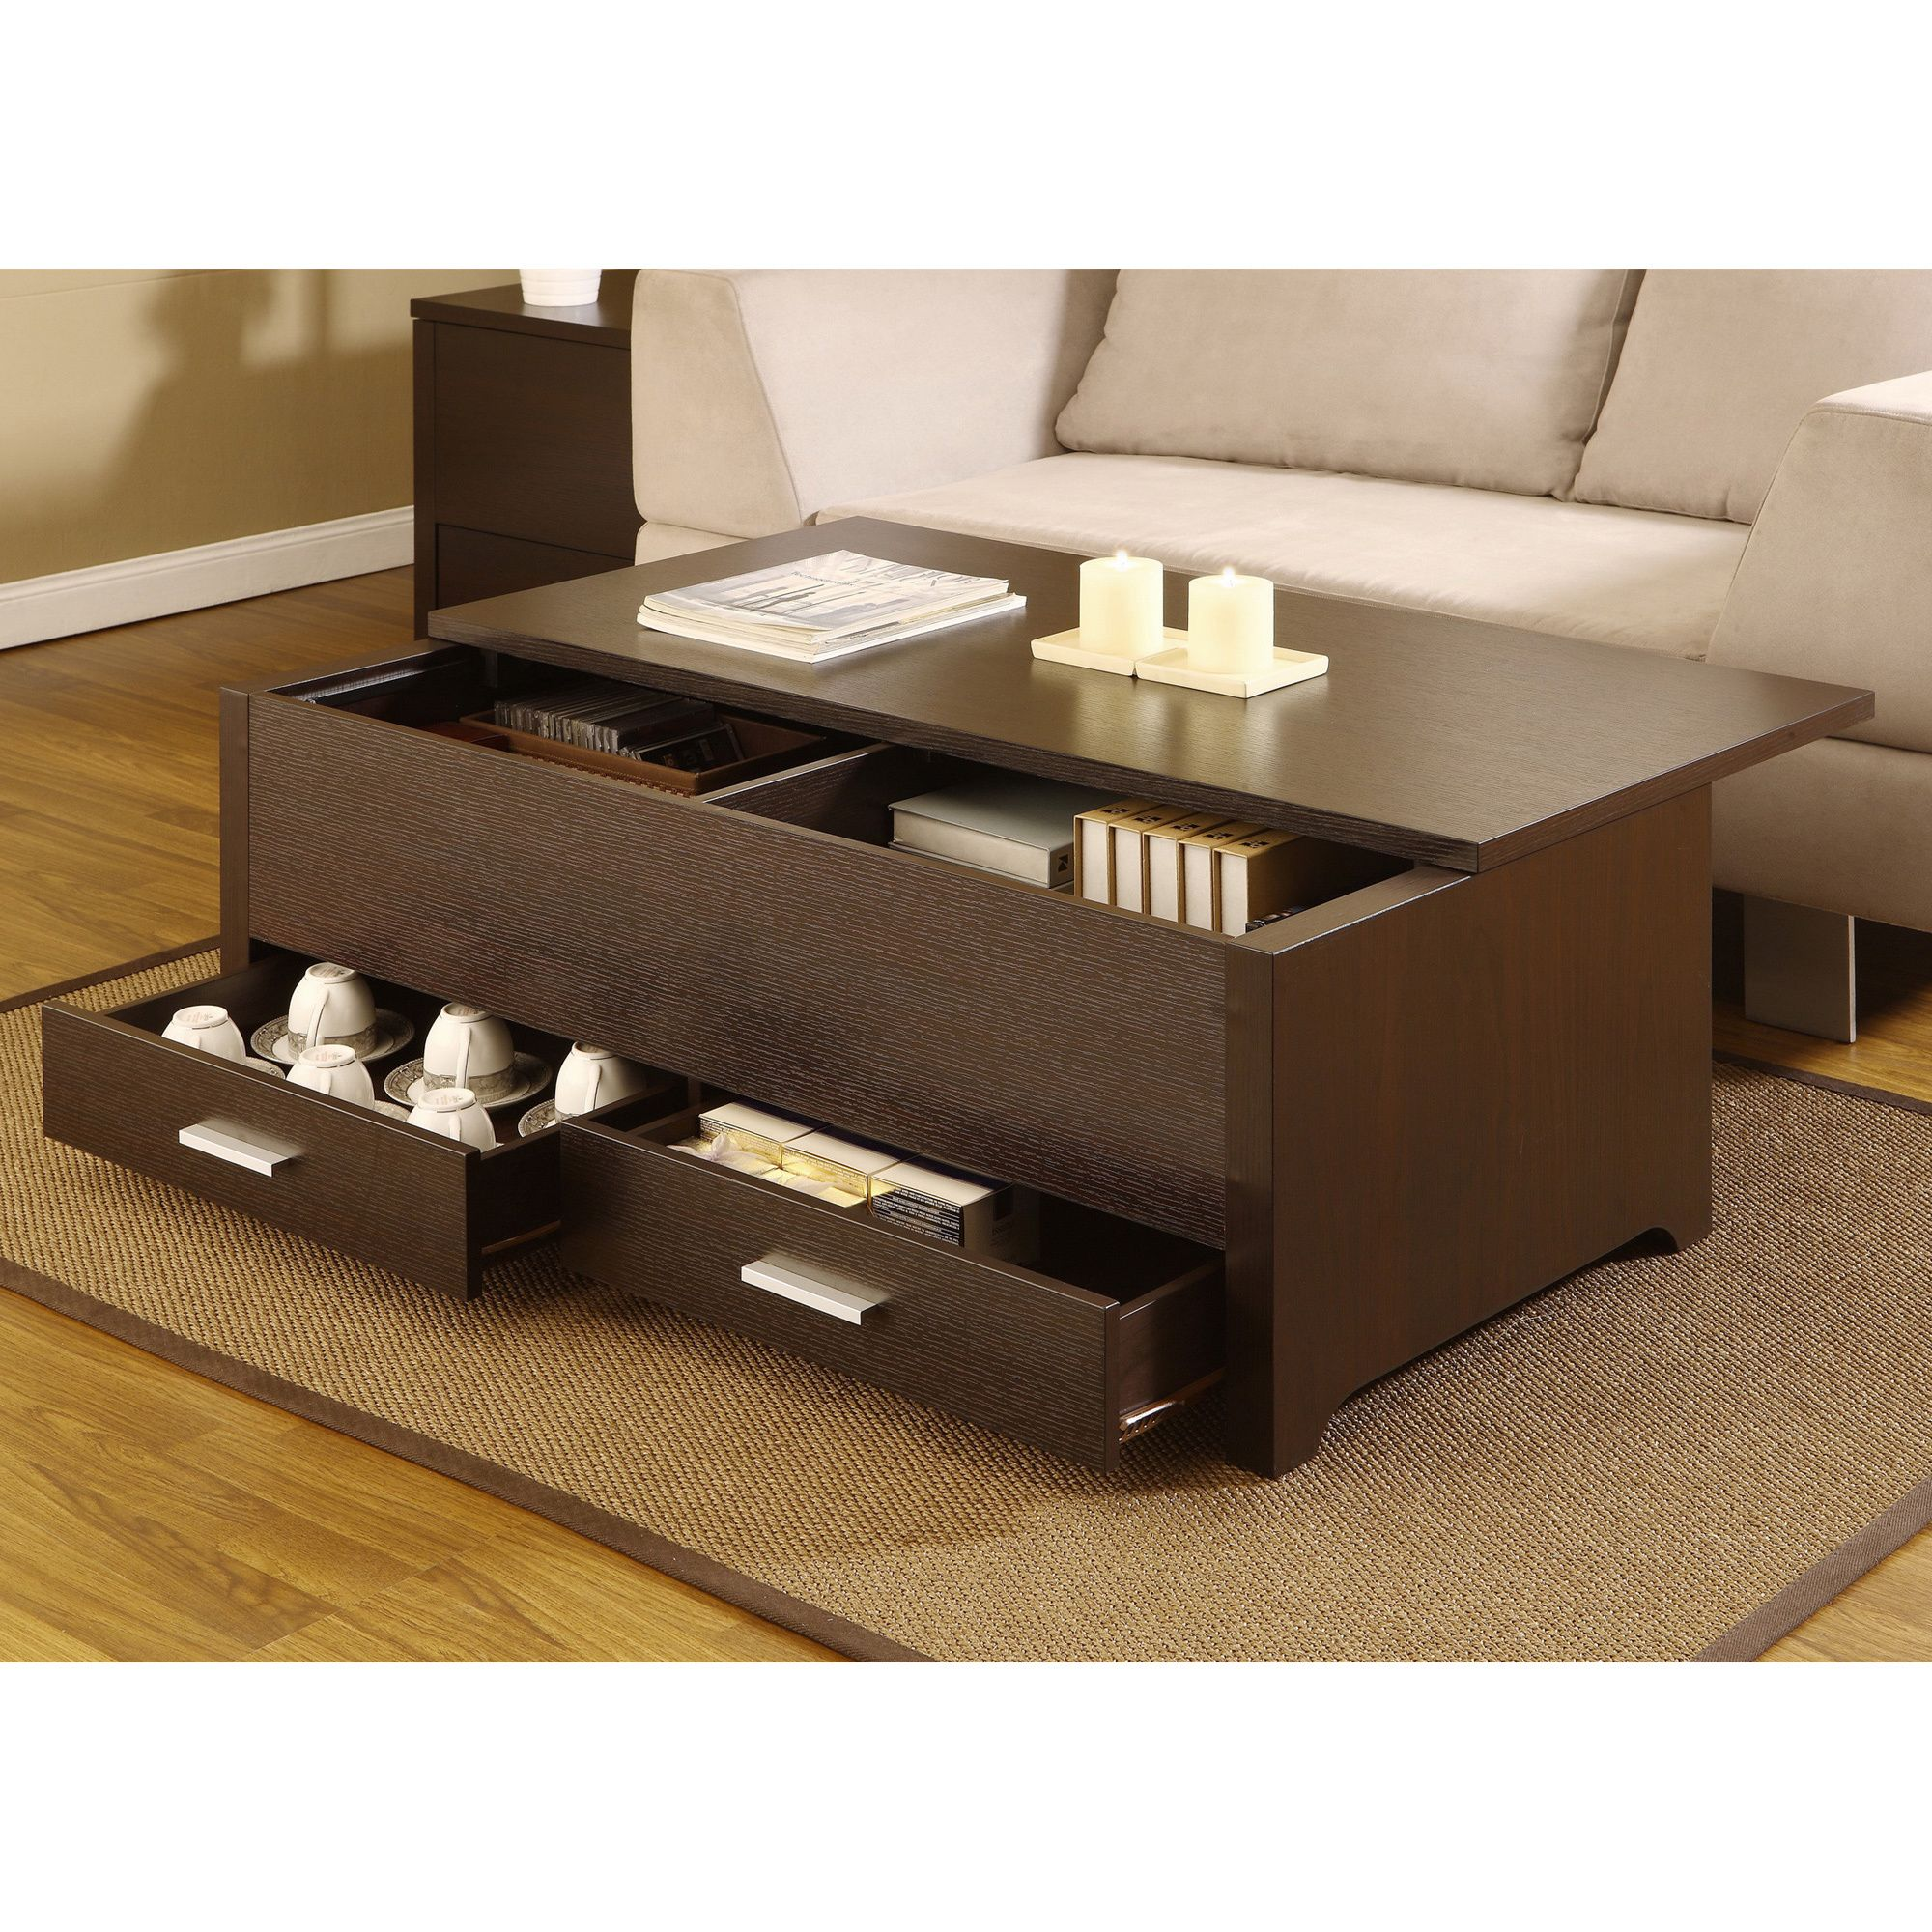 Limaterials wood veneer mdfli lifinish dark espressoli this contemporary storage box table combines plenty of space and a sliding table top panel this dark espresso coffee table has 2 drawers and a sliding top geotapseo Gallery